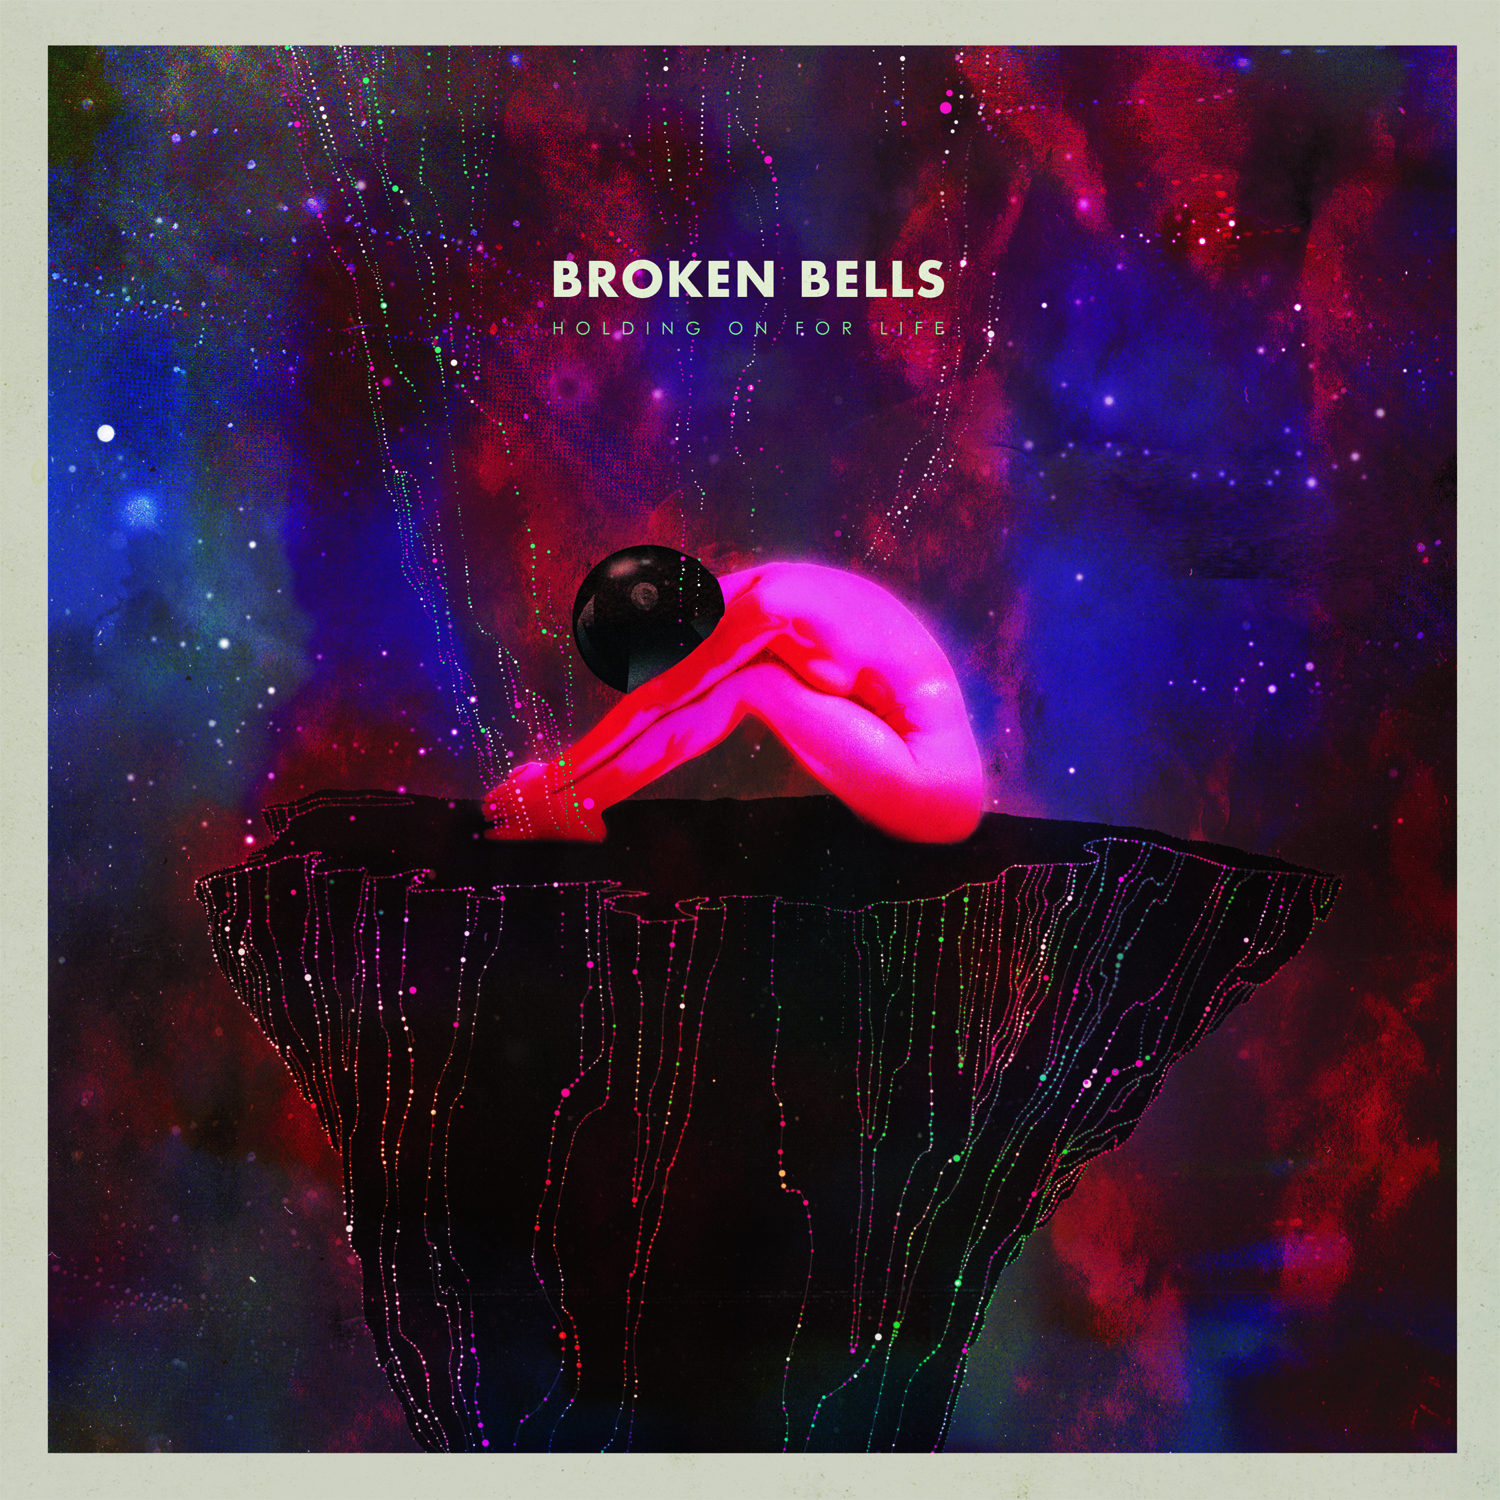 Broken Bells - Holdin On For Life